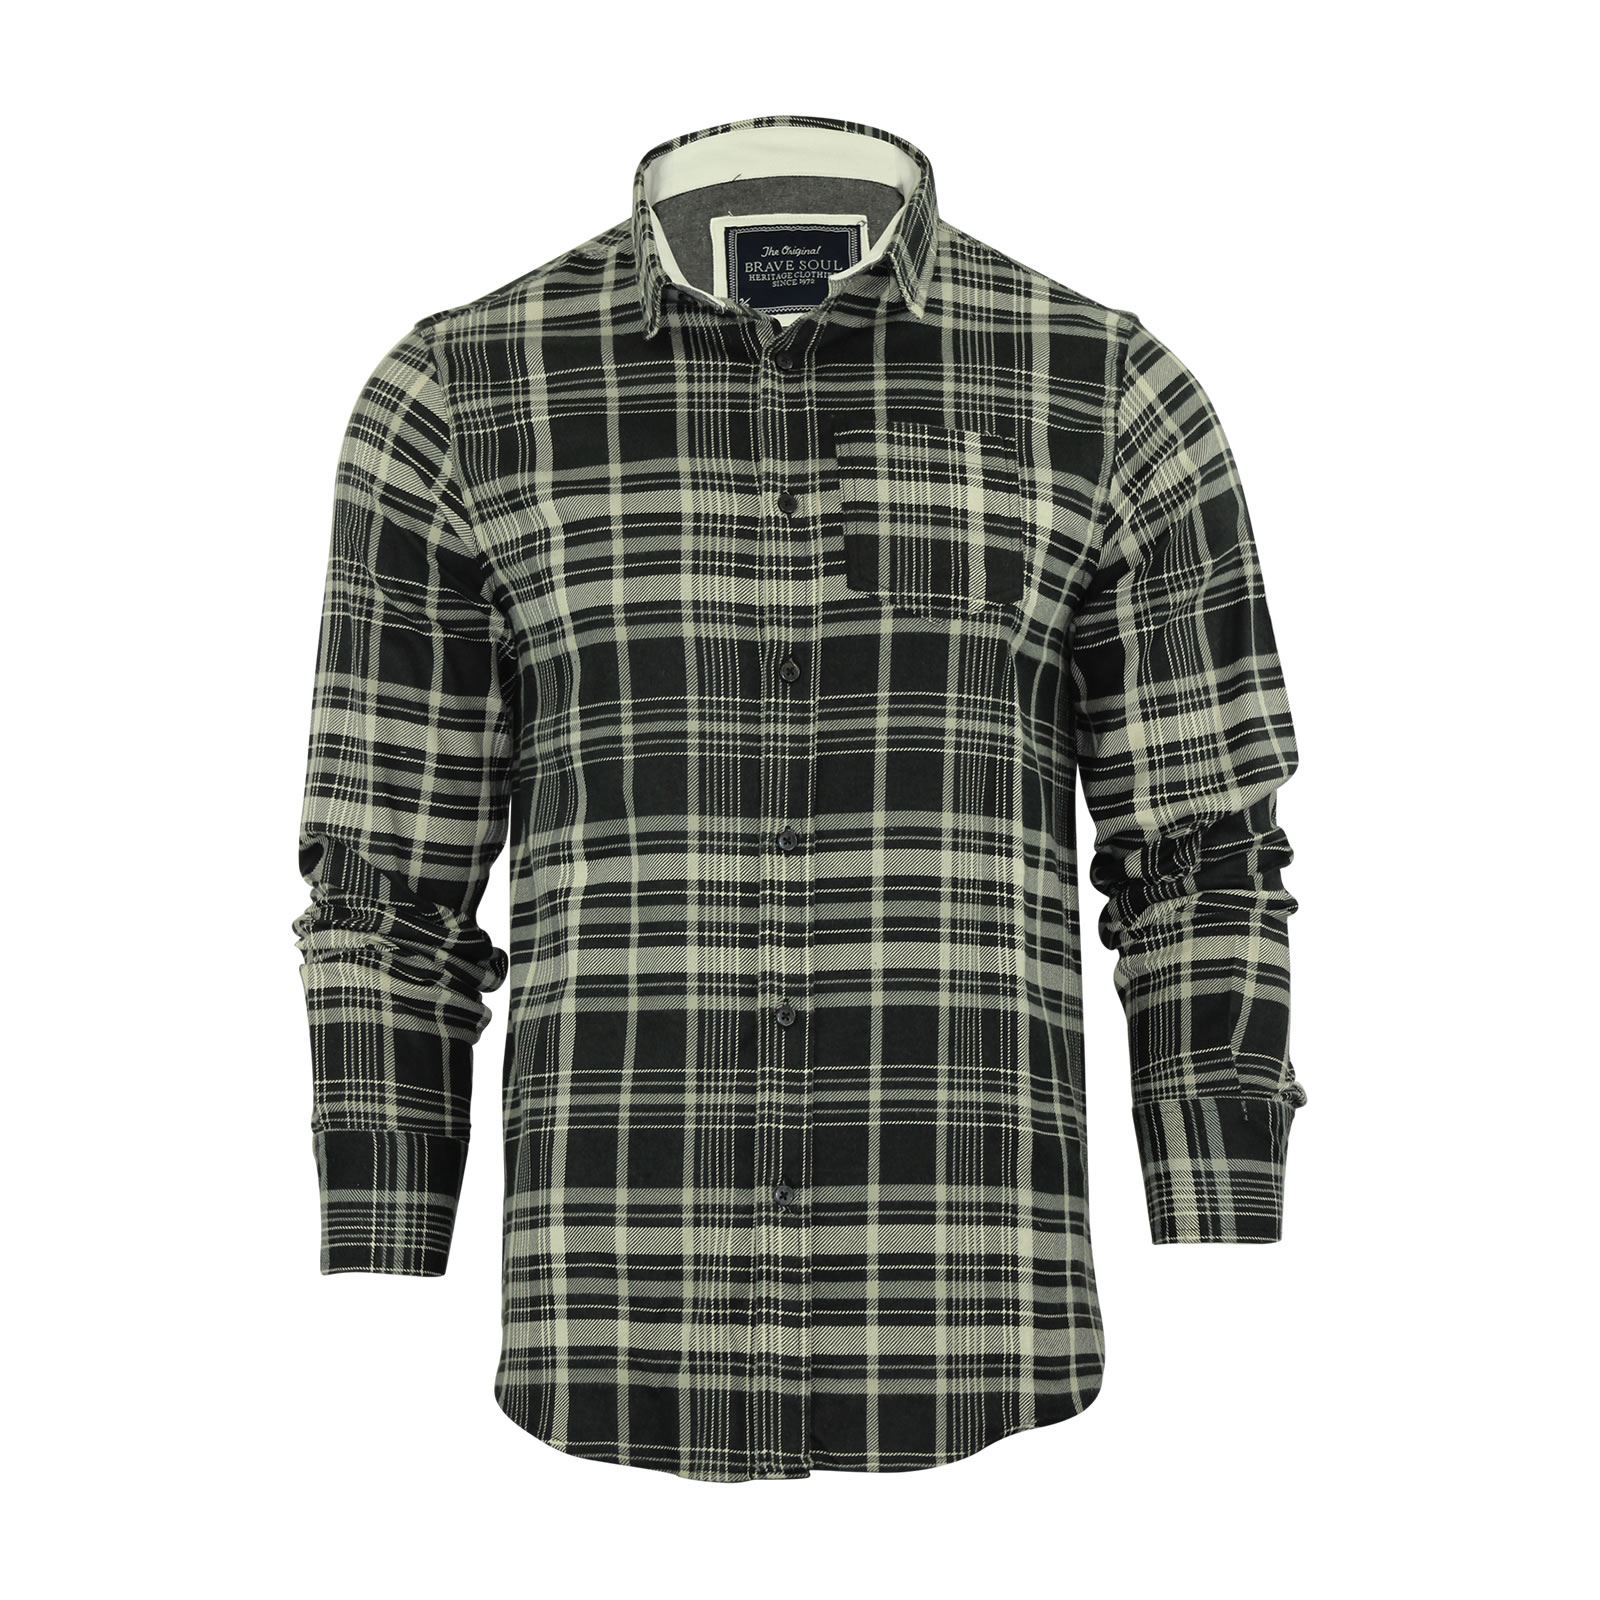 Brave-Soul-Mens-Check-Shirt-Flannel-Brushed-Cotton-Long-Sleeve-Casual-Top thumbnail 91